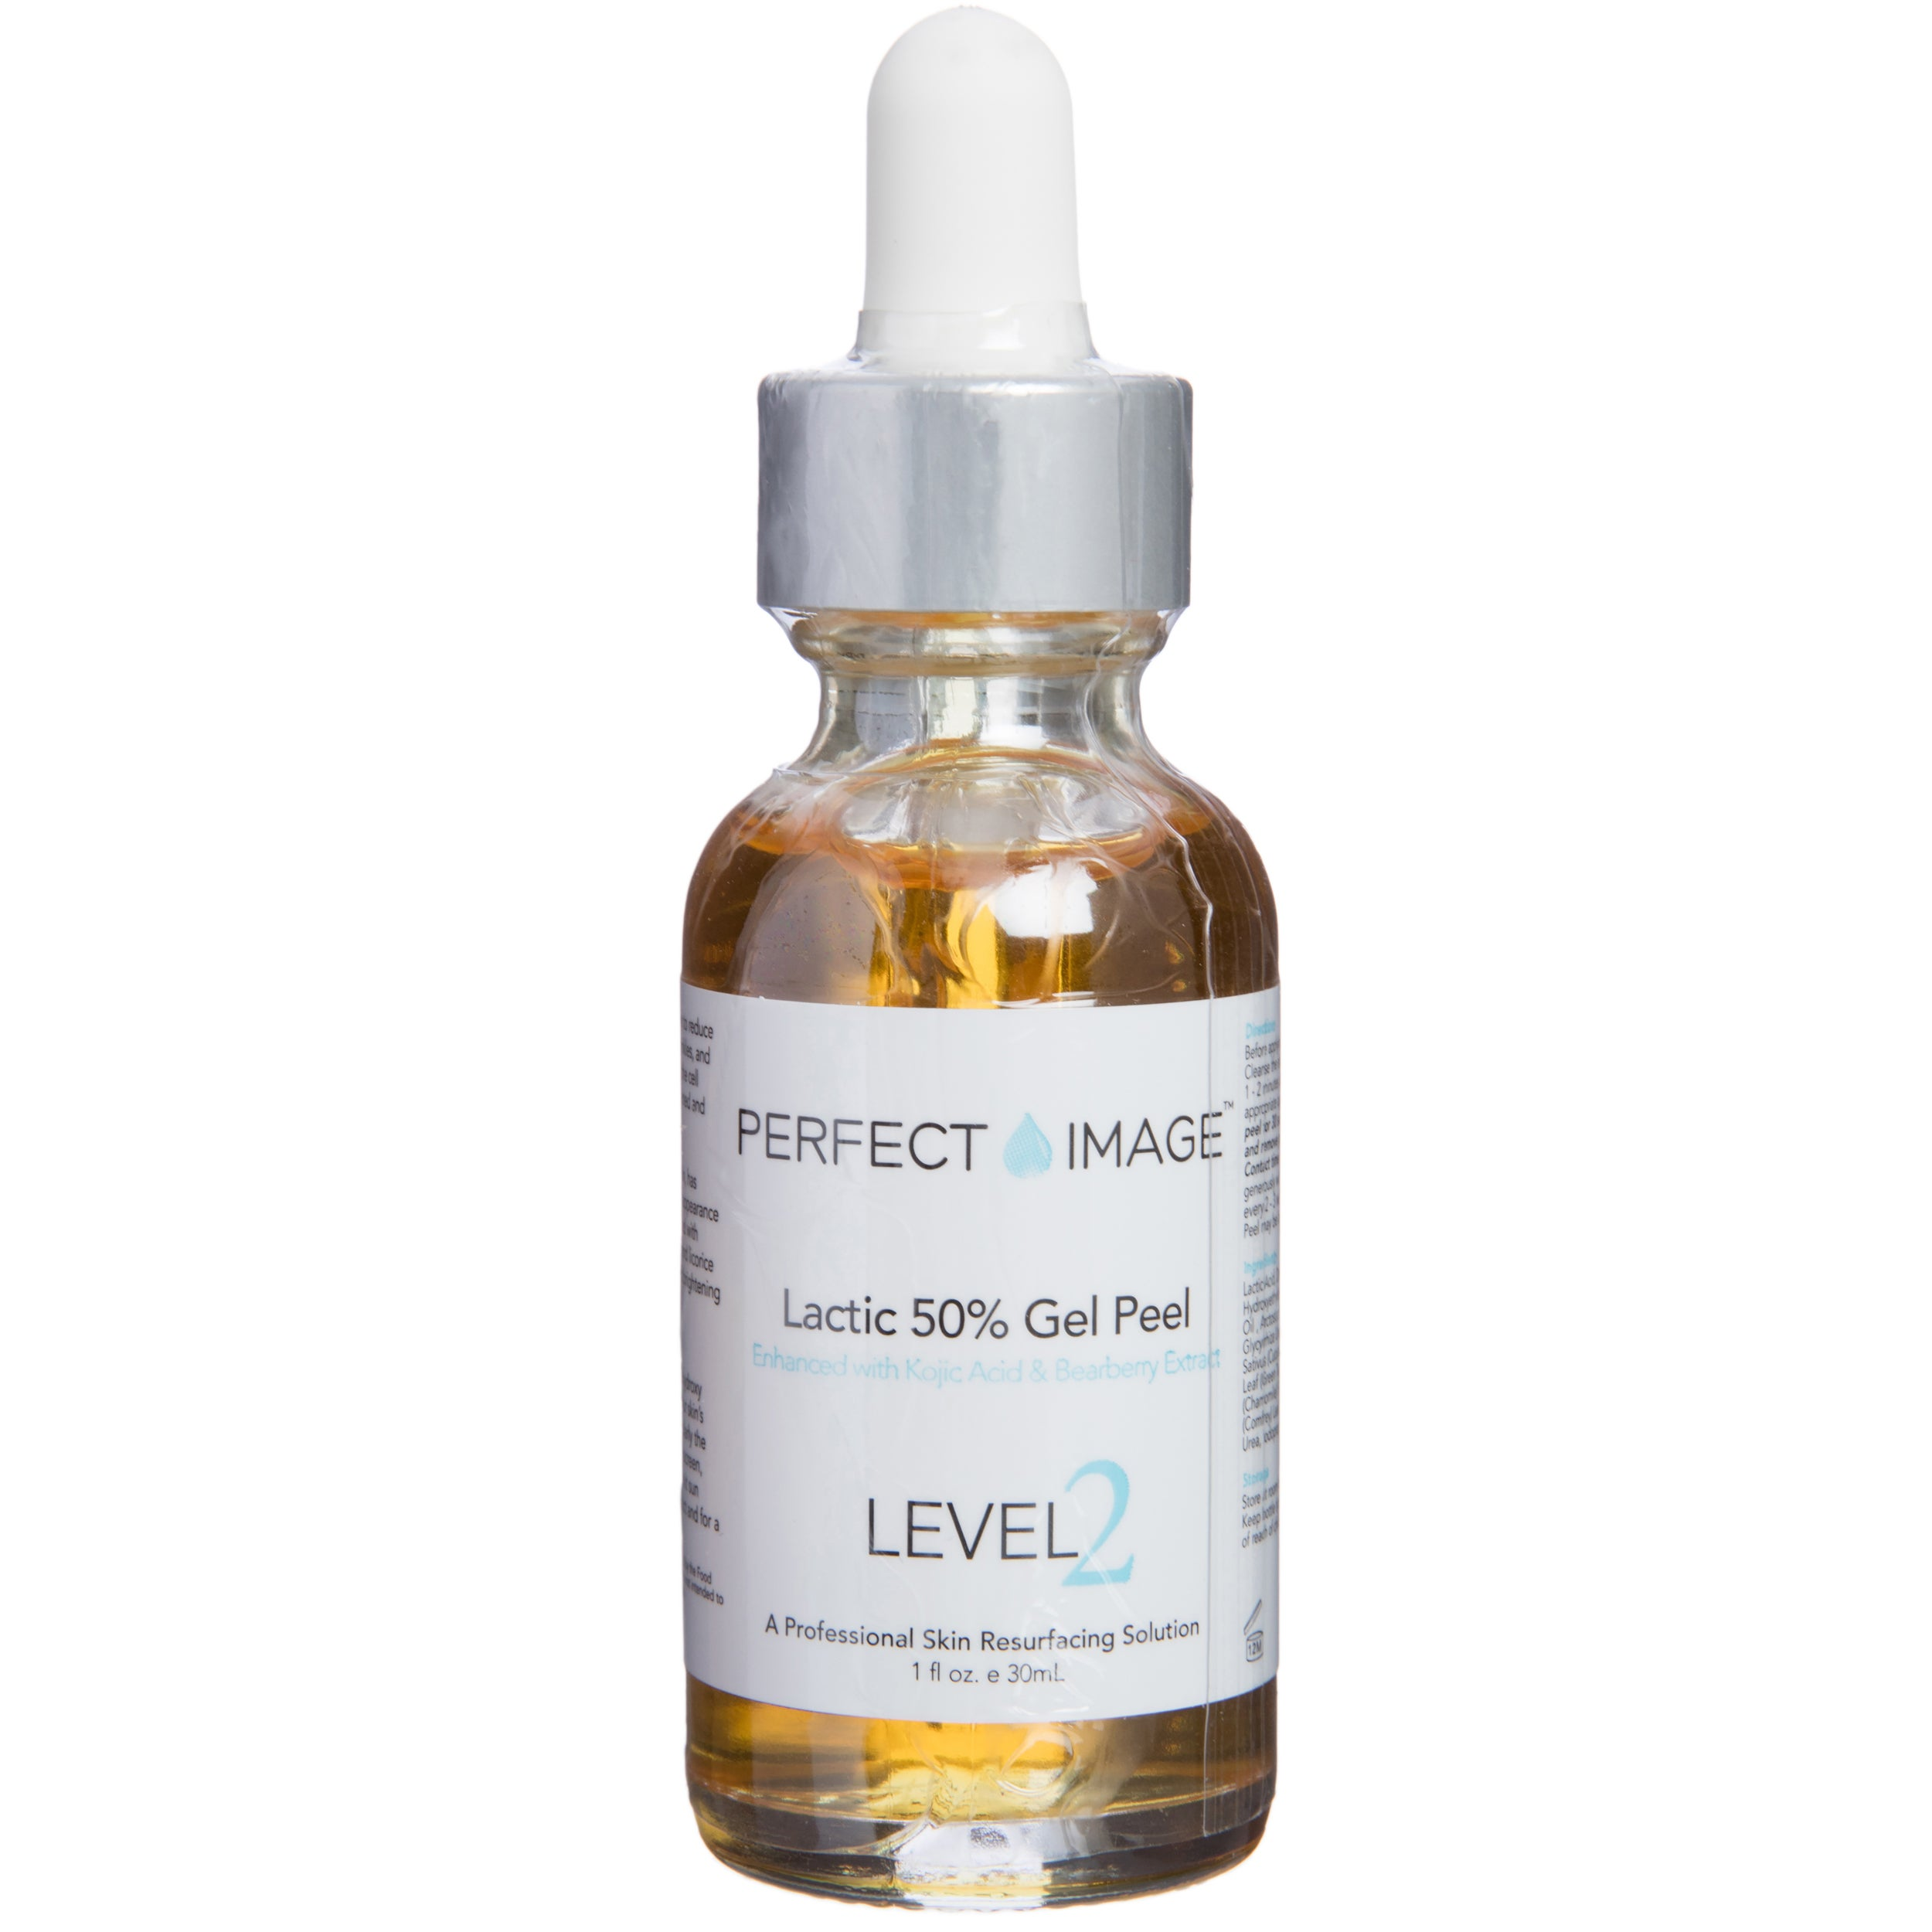 Perfect Image Lactic Acid Gel Peel with Kojic Acid and Be...